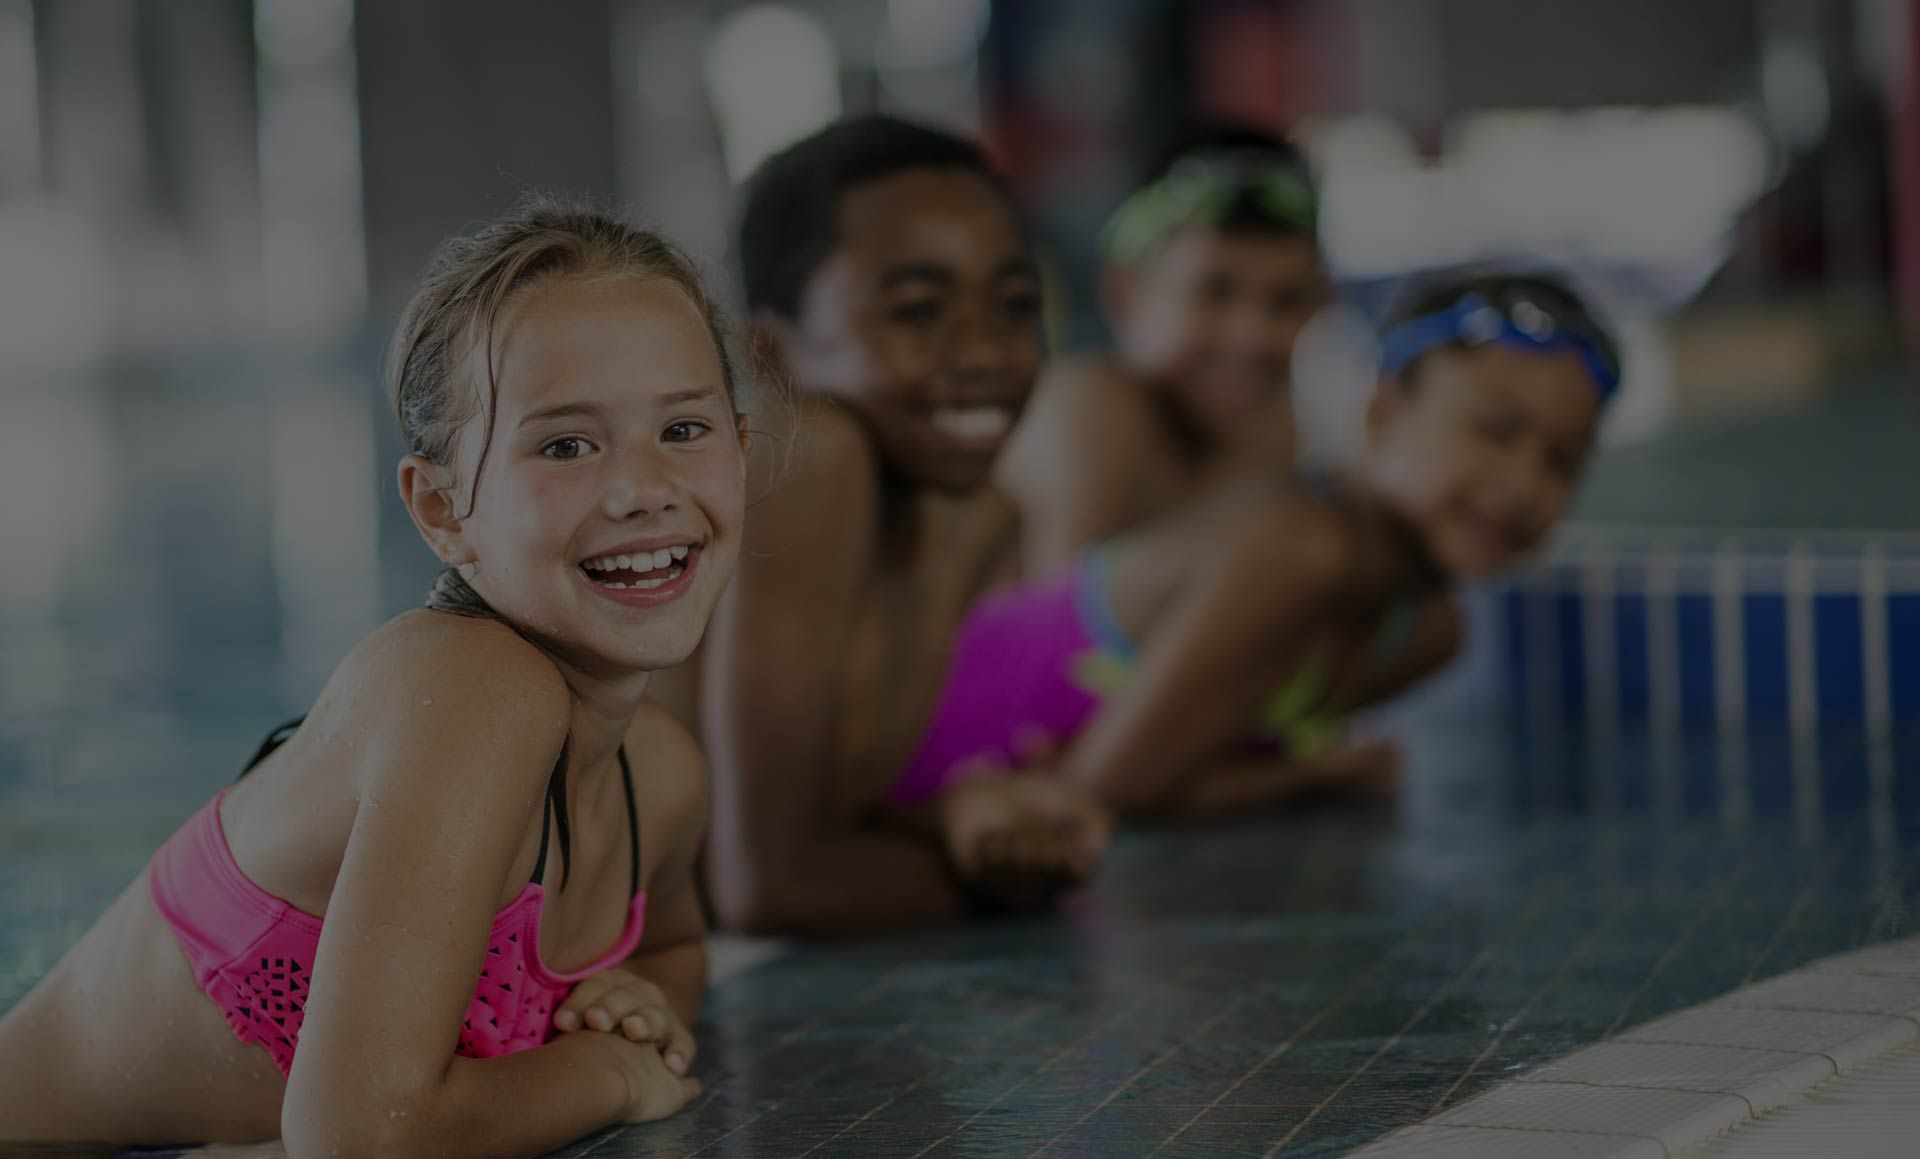 a group of kids leaning on the side of a pool, covered under FitSecure's insurance policies